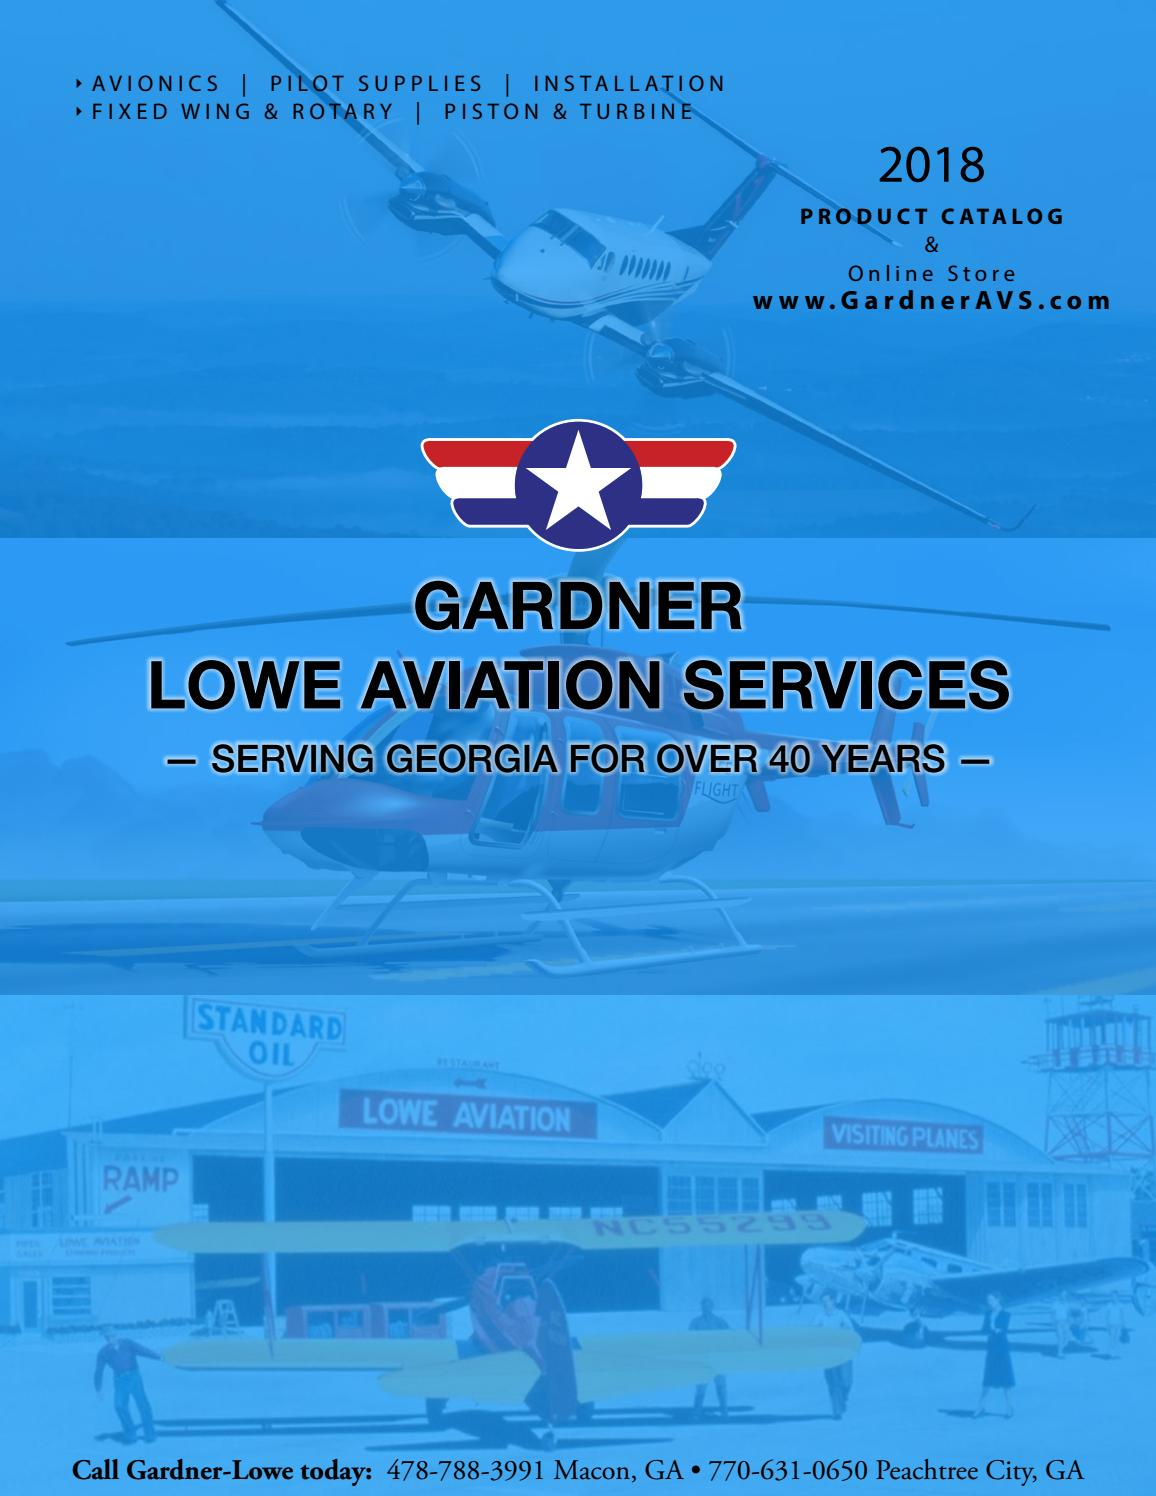 Gardner Lowe Aviation Services 2018 Product Catalog by m t - issuu on